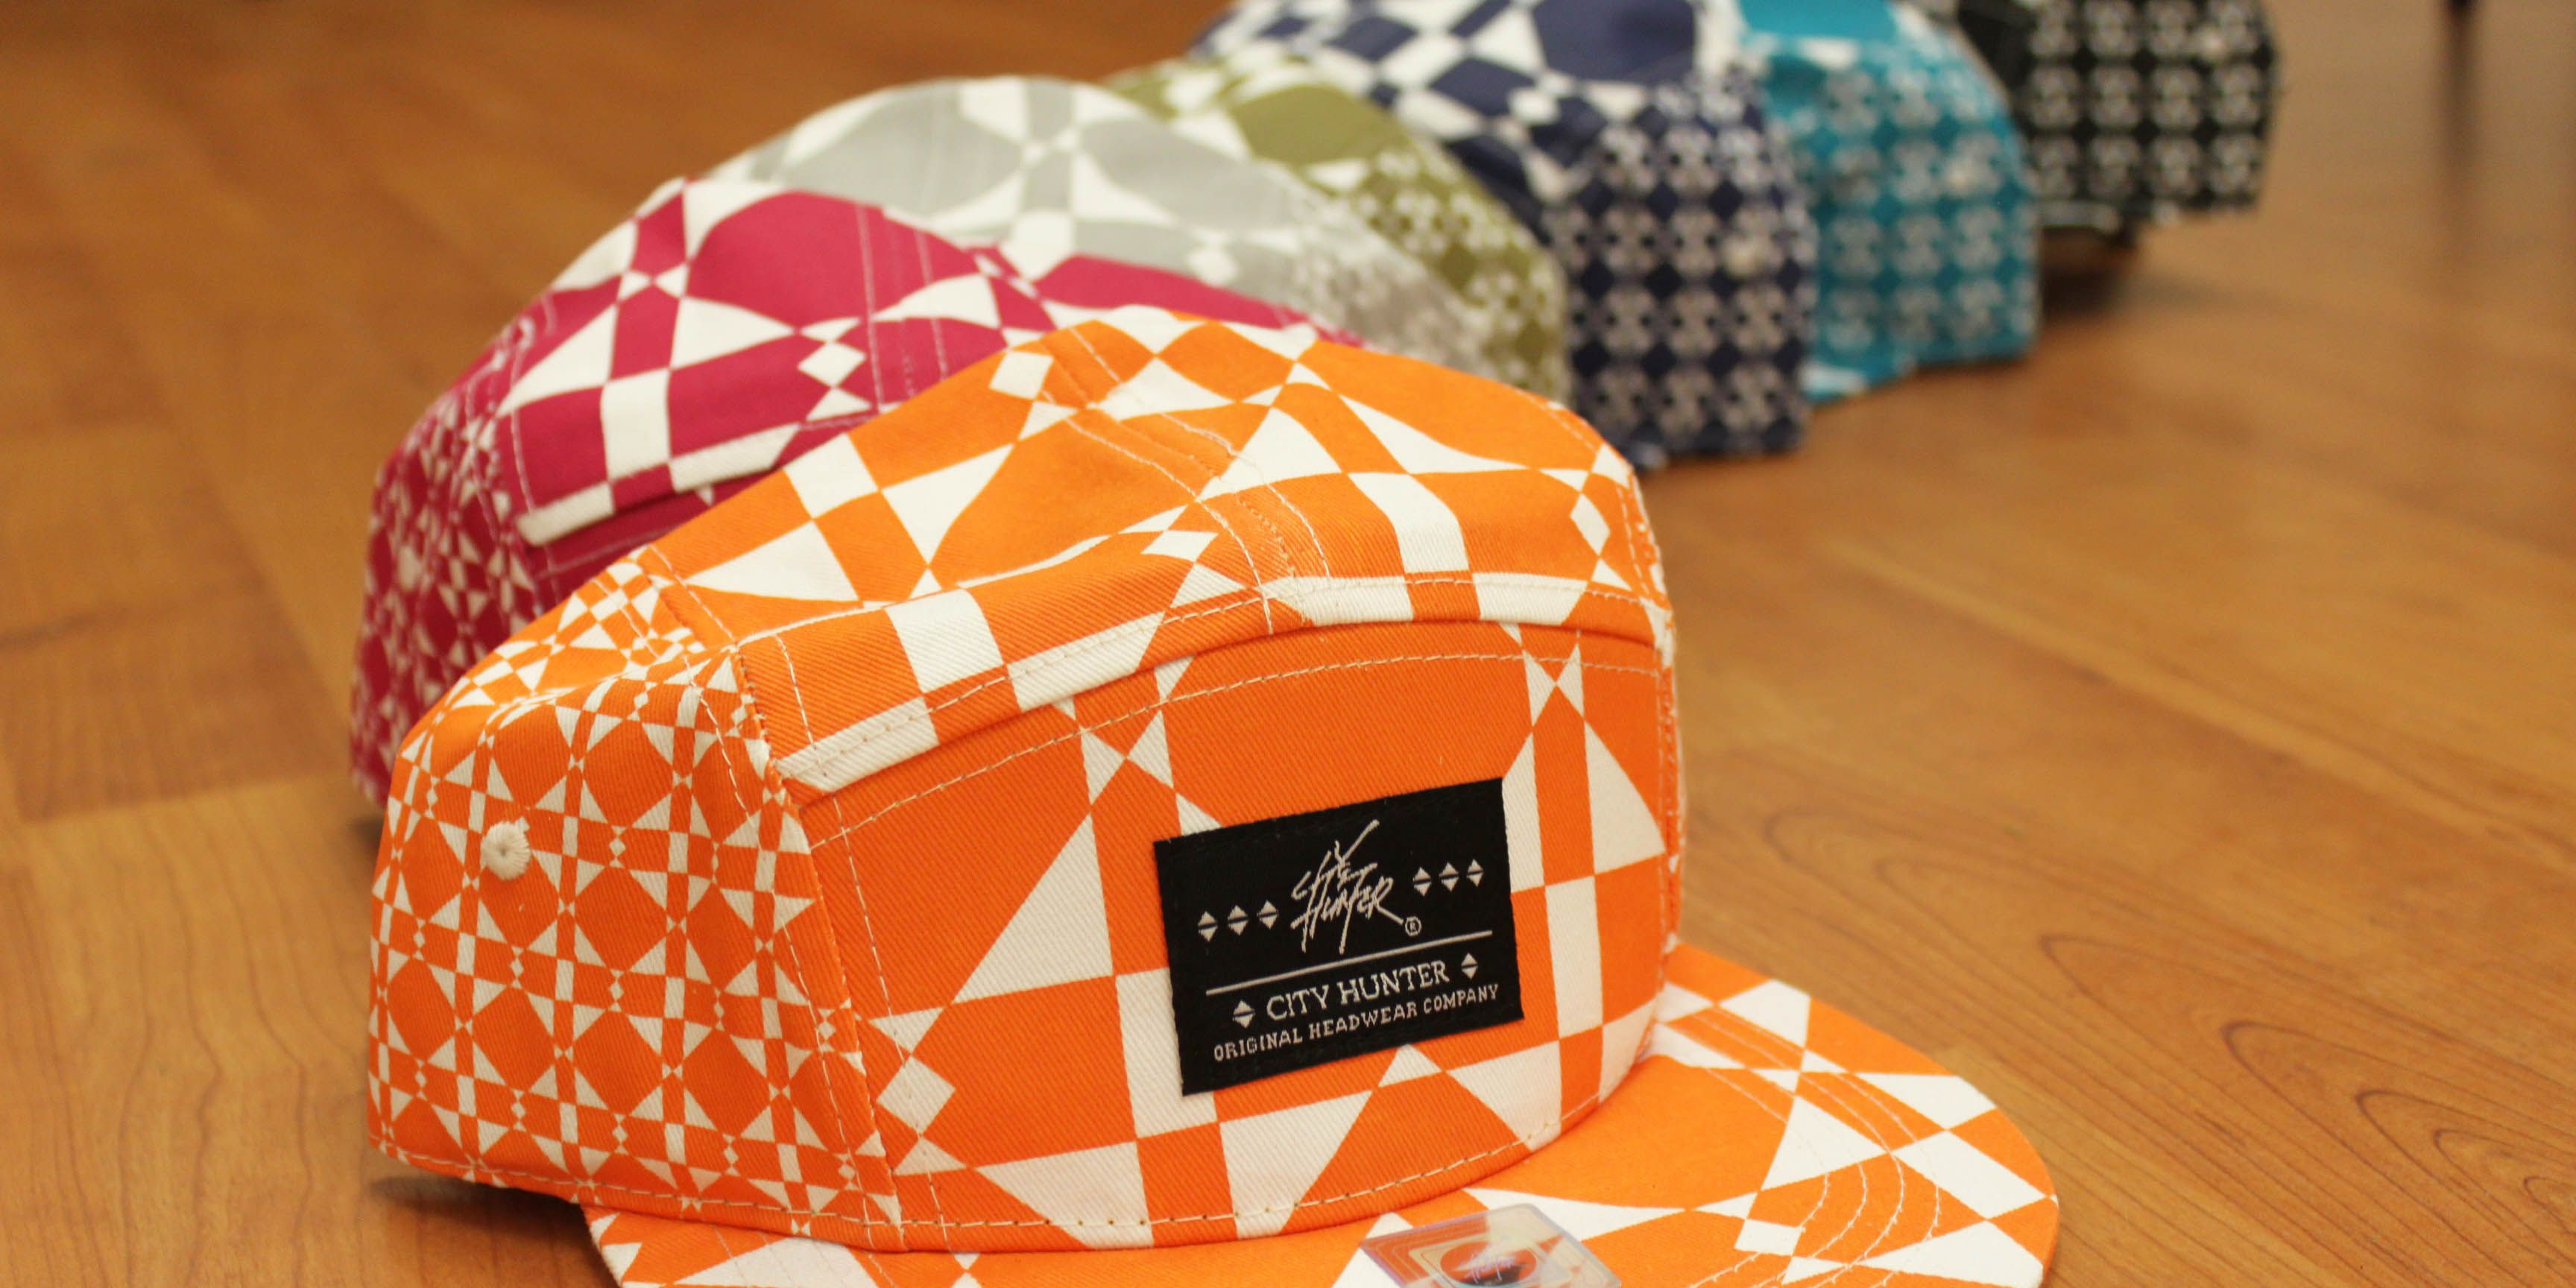 City Hunter's one of the hot summer, CN680 Diamond Pattern Five Panel Hat, is on SALE NOW! Great summer attracting colors and pattern designs; it is a must have hat of the summer. Get yours today! On Sale Now for $14.99  http://bit.ly/1jZCNuO